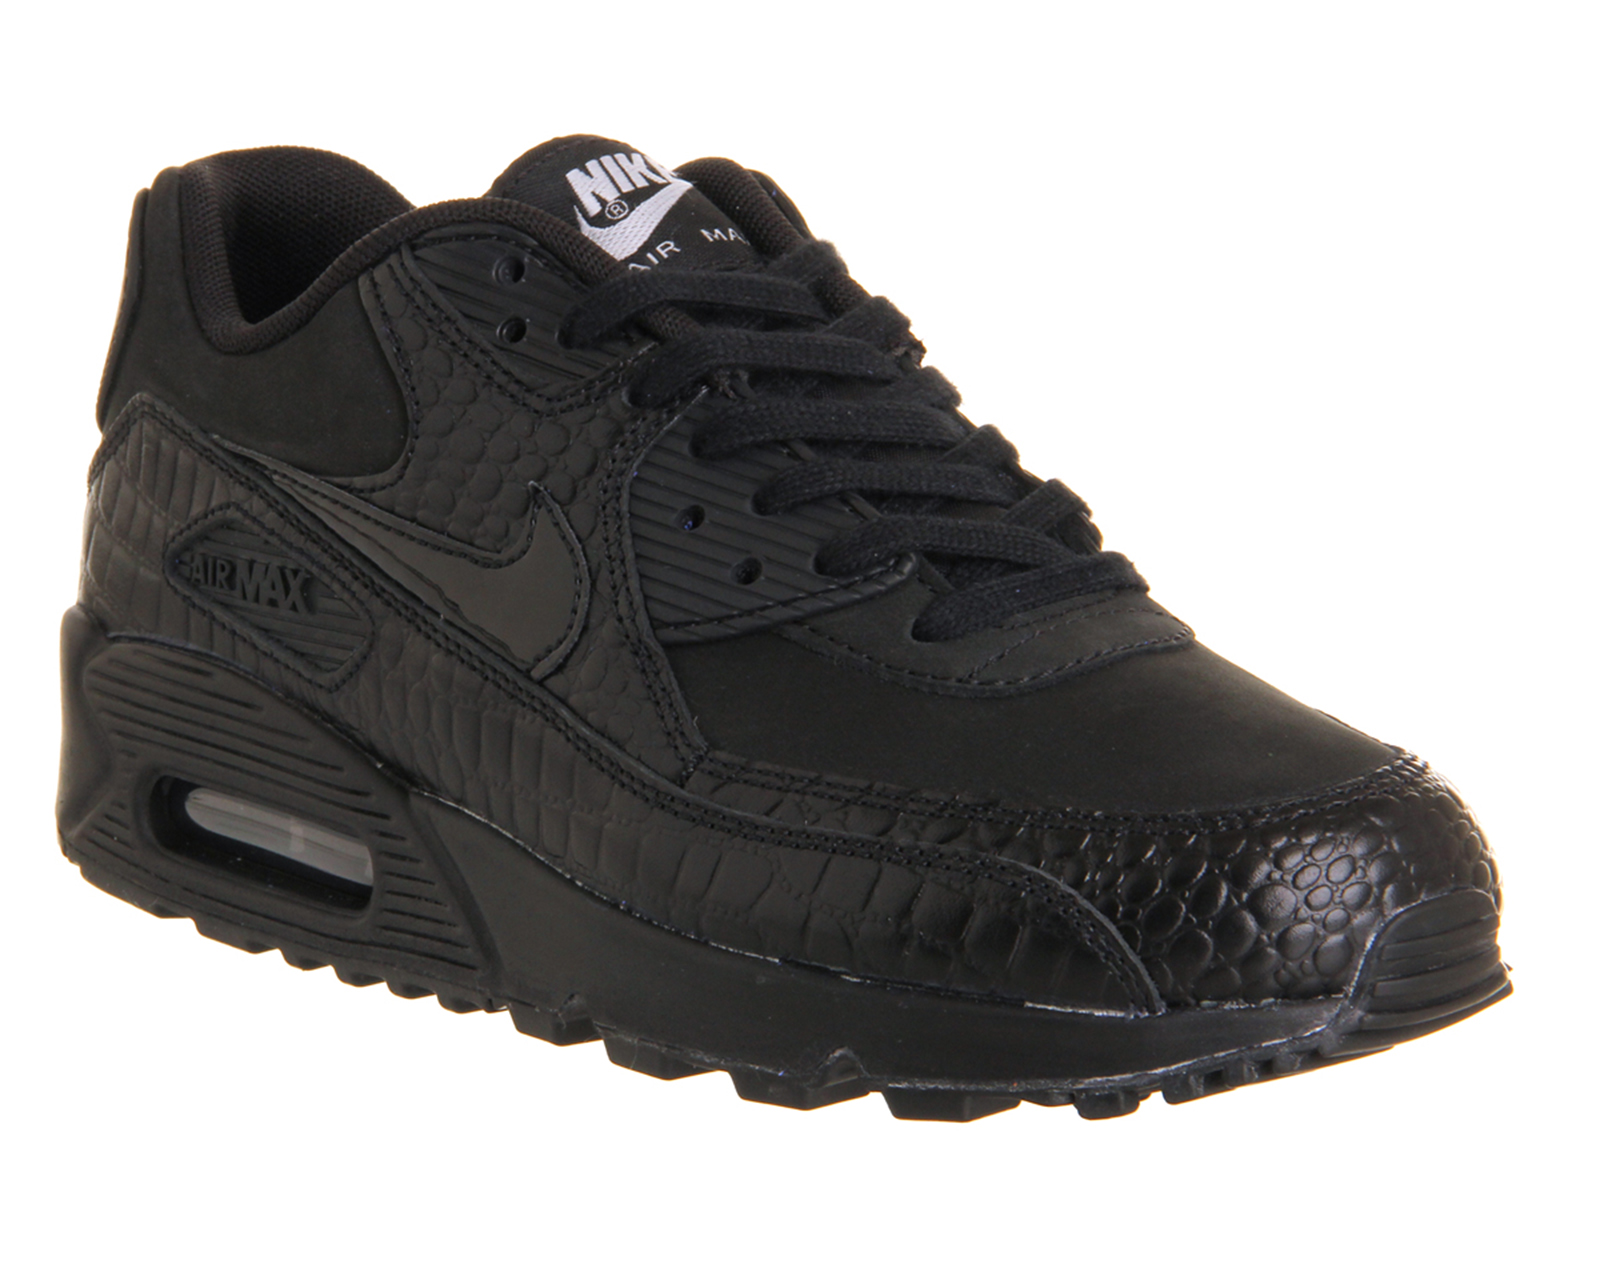 premium selection 67f0f 7655b Air Max 90 (w). Double tap to zoom into the image